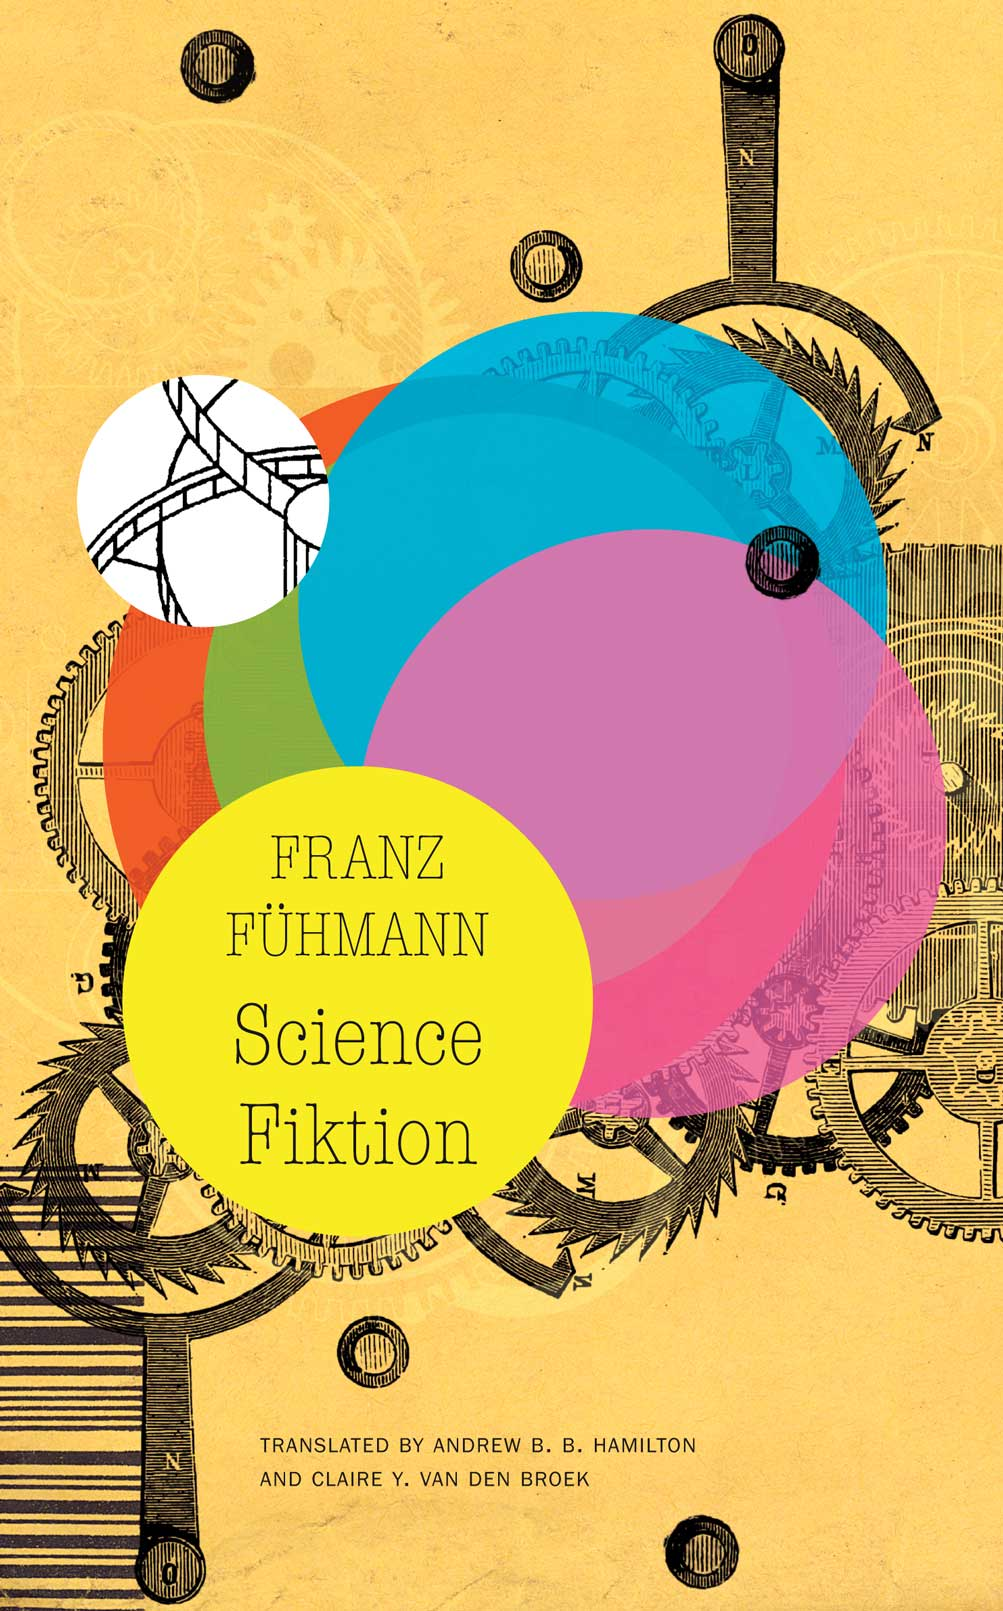 Science Fiktion by Franz Fühmann | Seagull Books